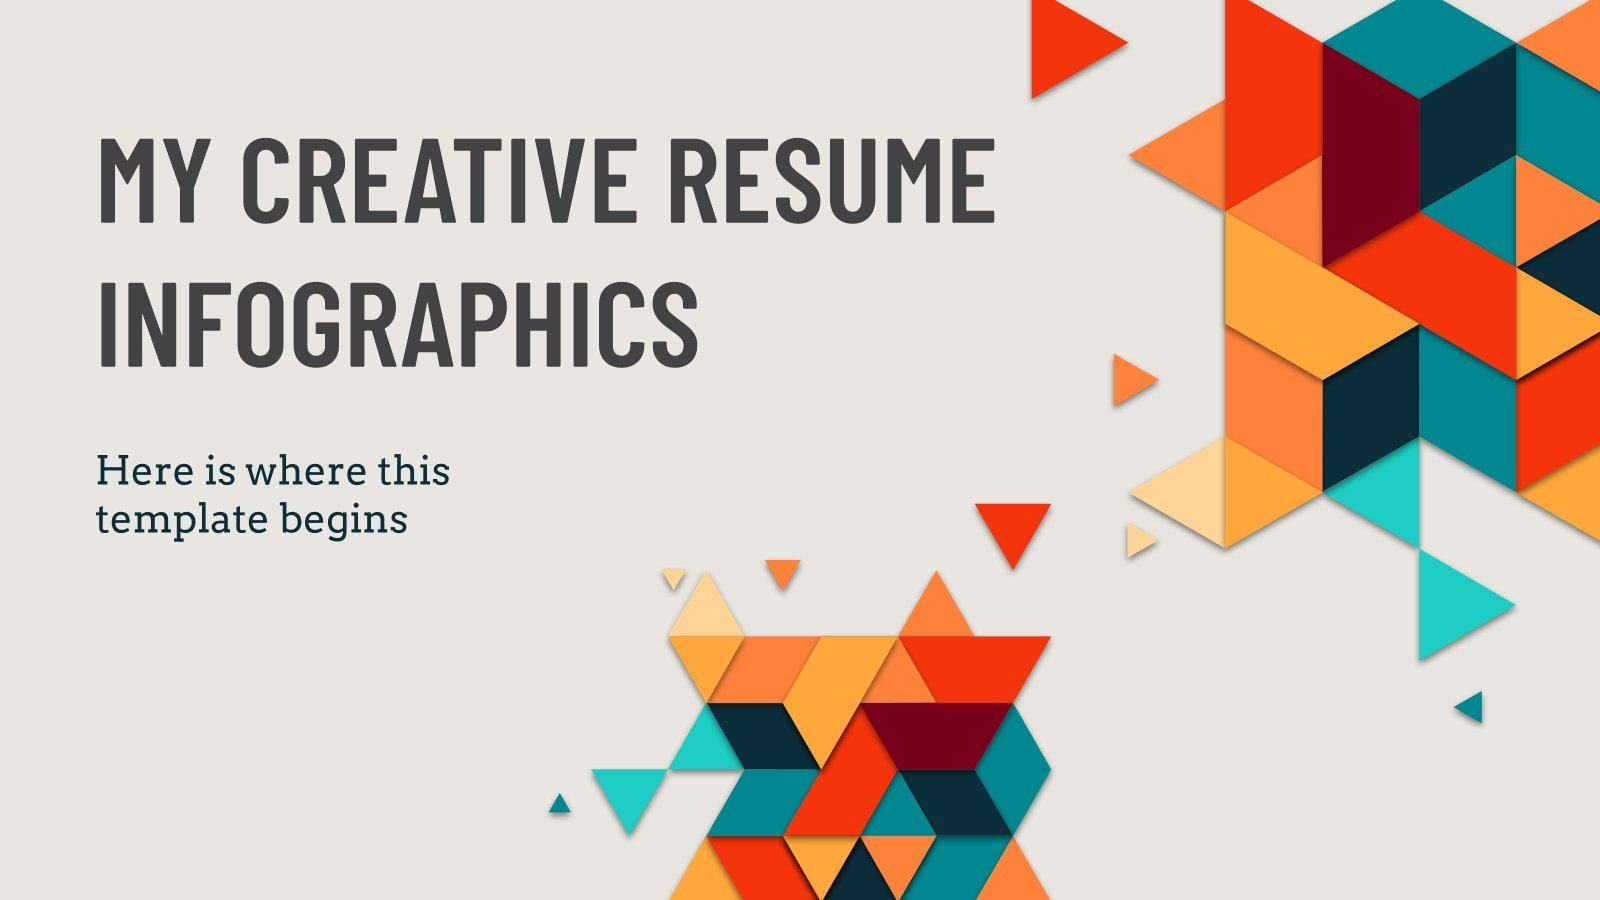 My Creative Resume Infographics presentation template